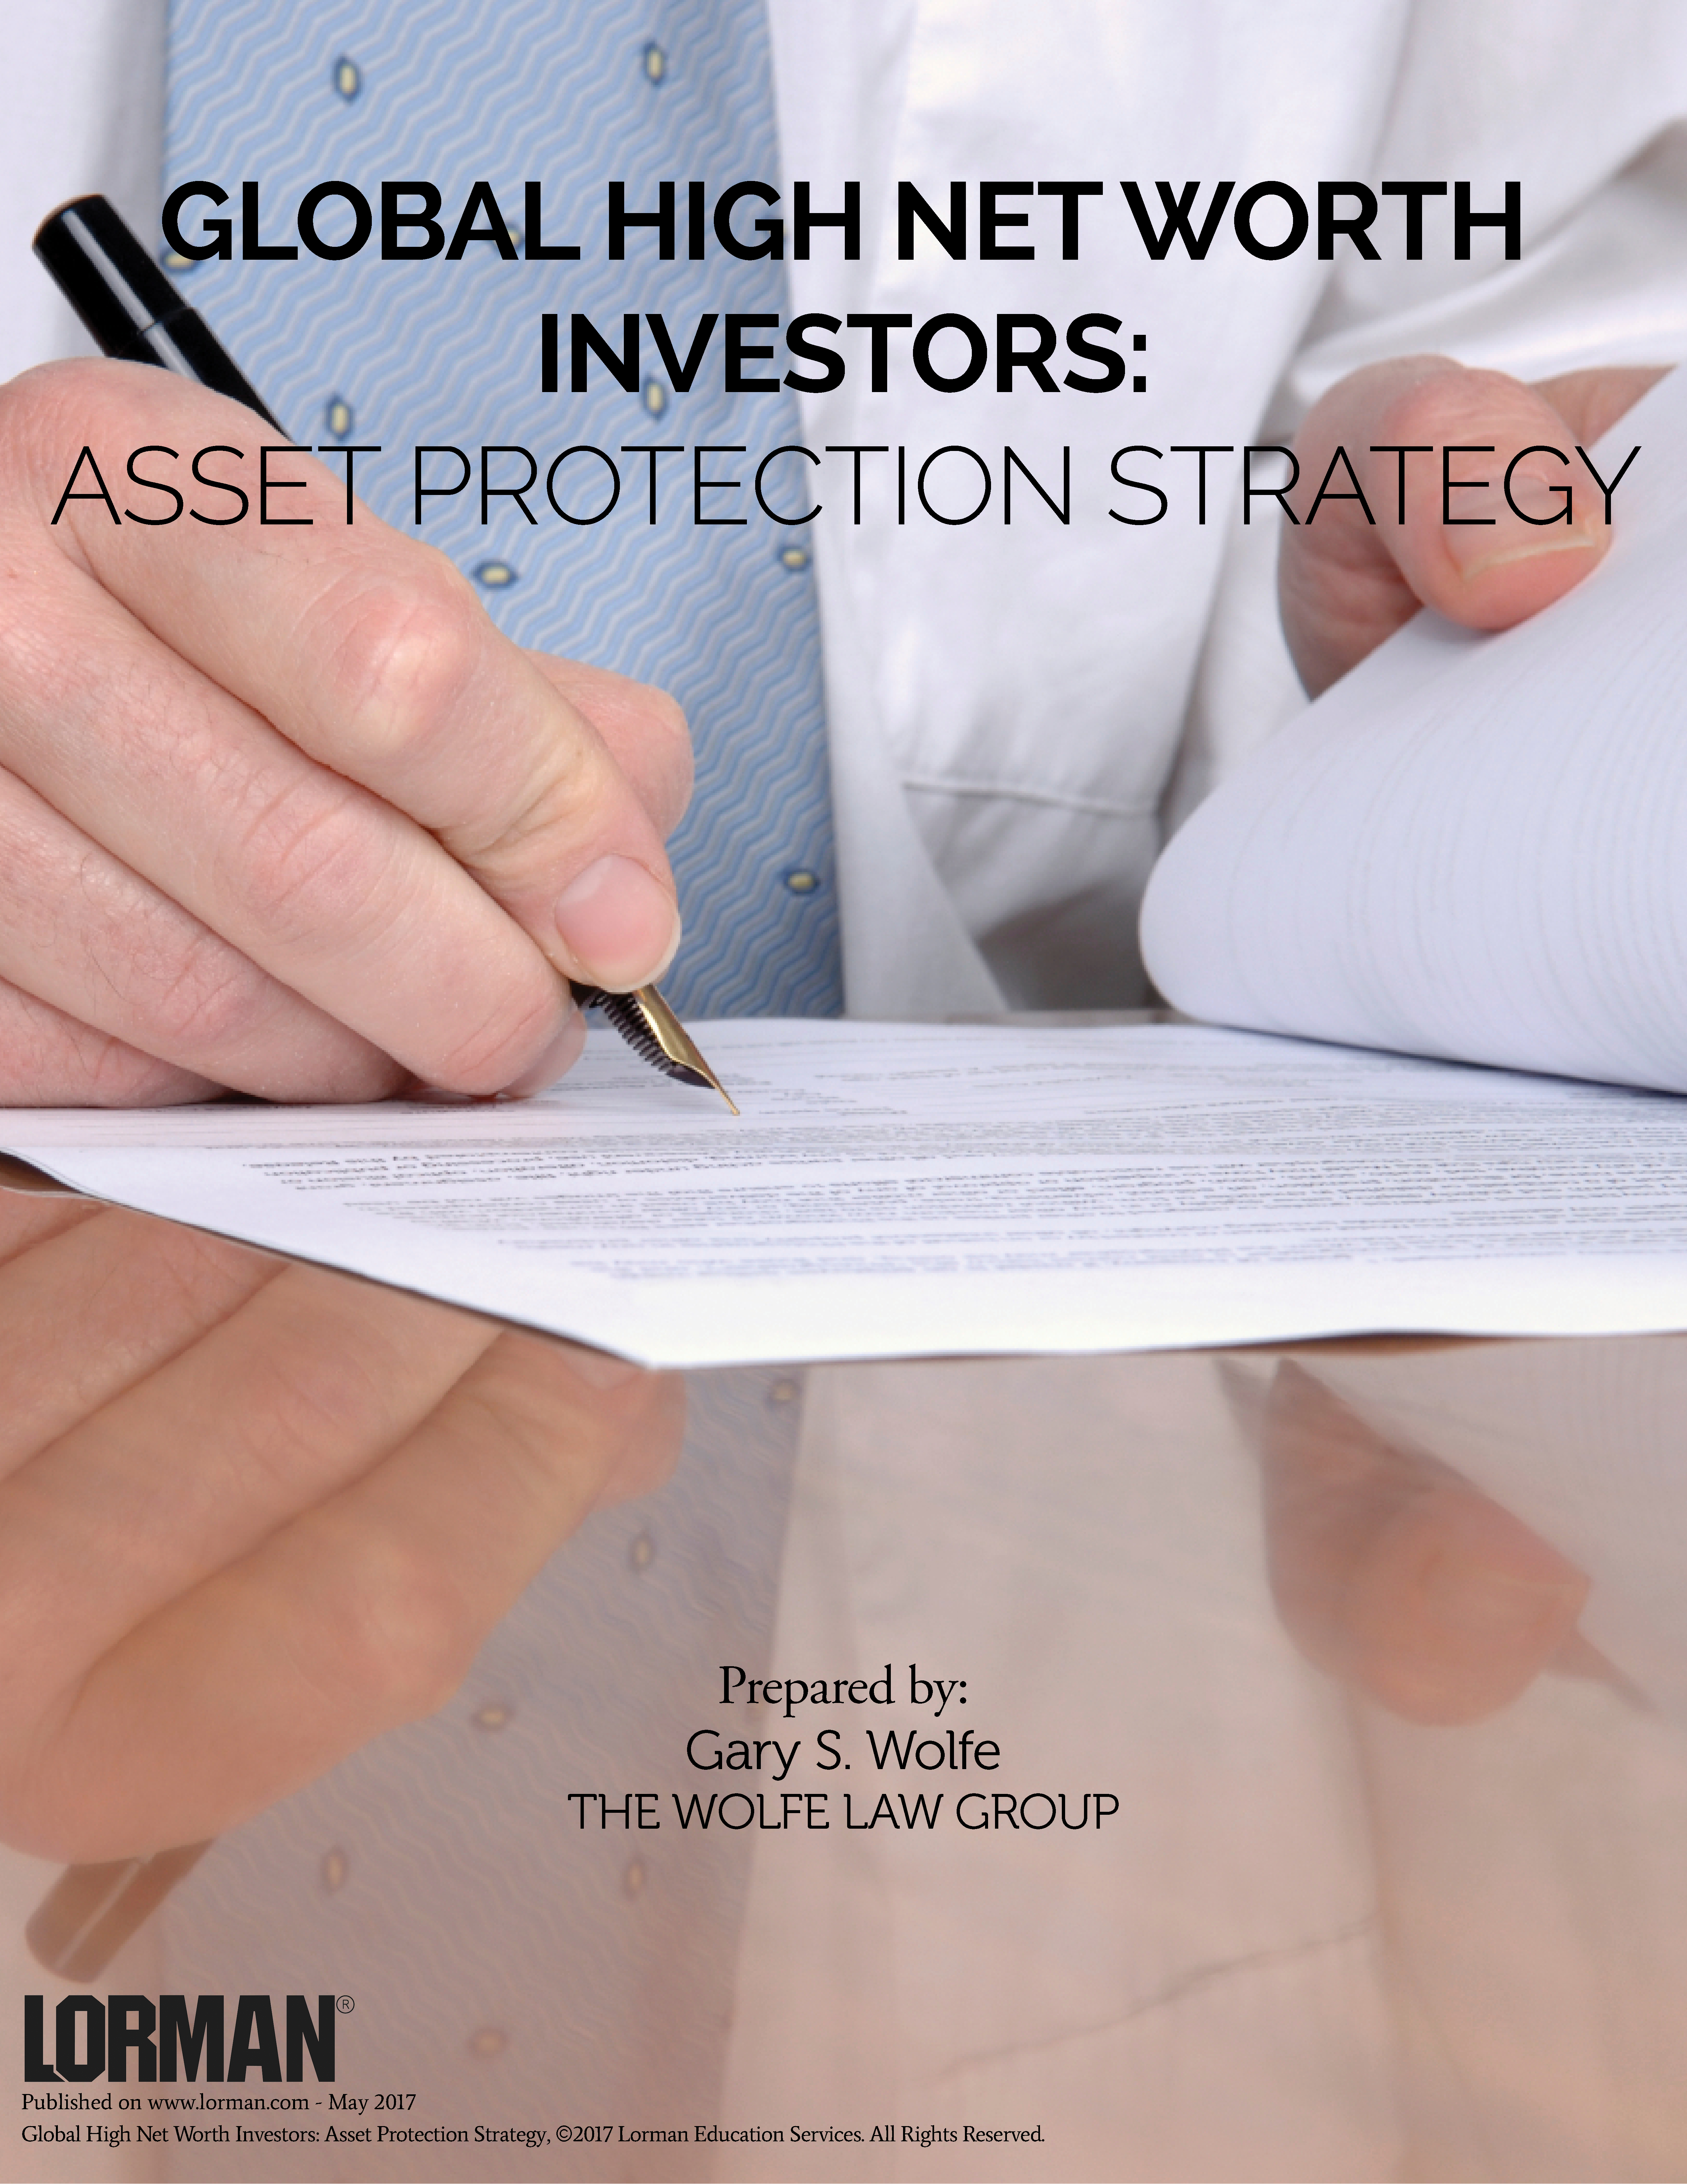 Global High Net Worth Investors: Asset Protection Strategy